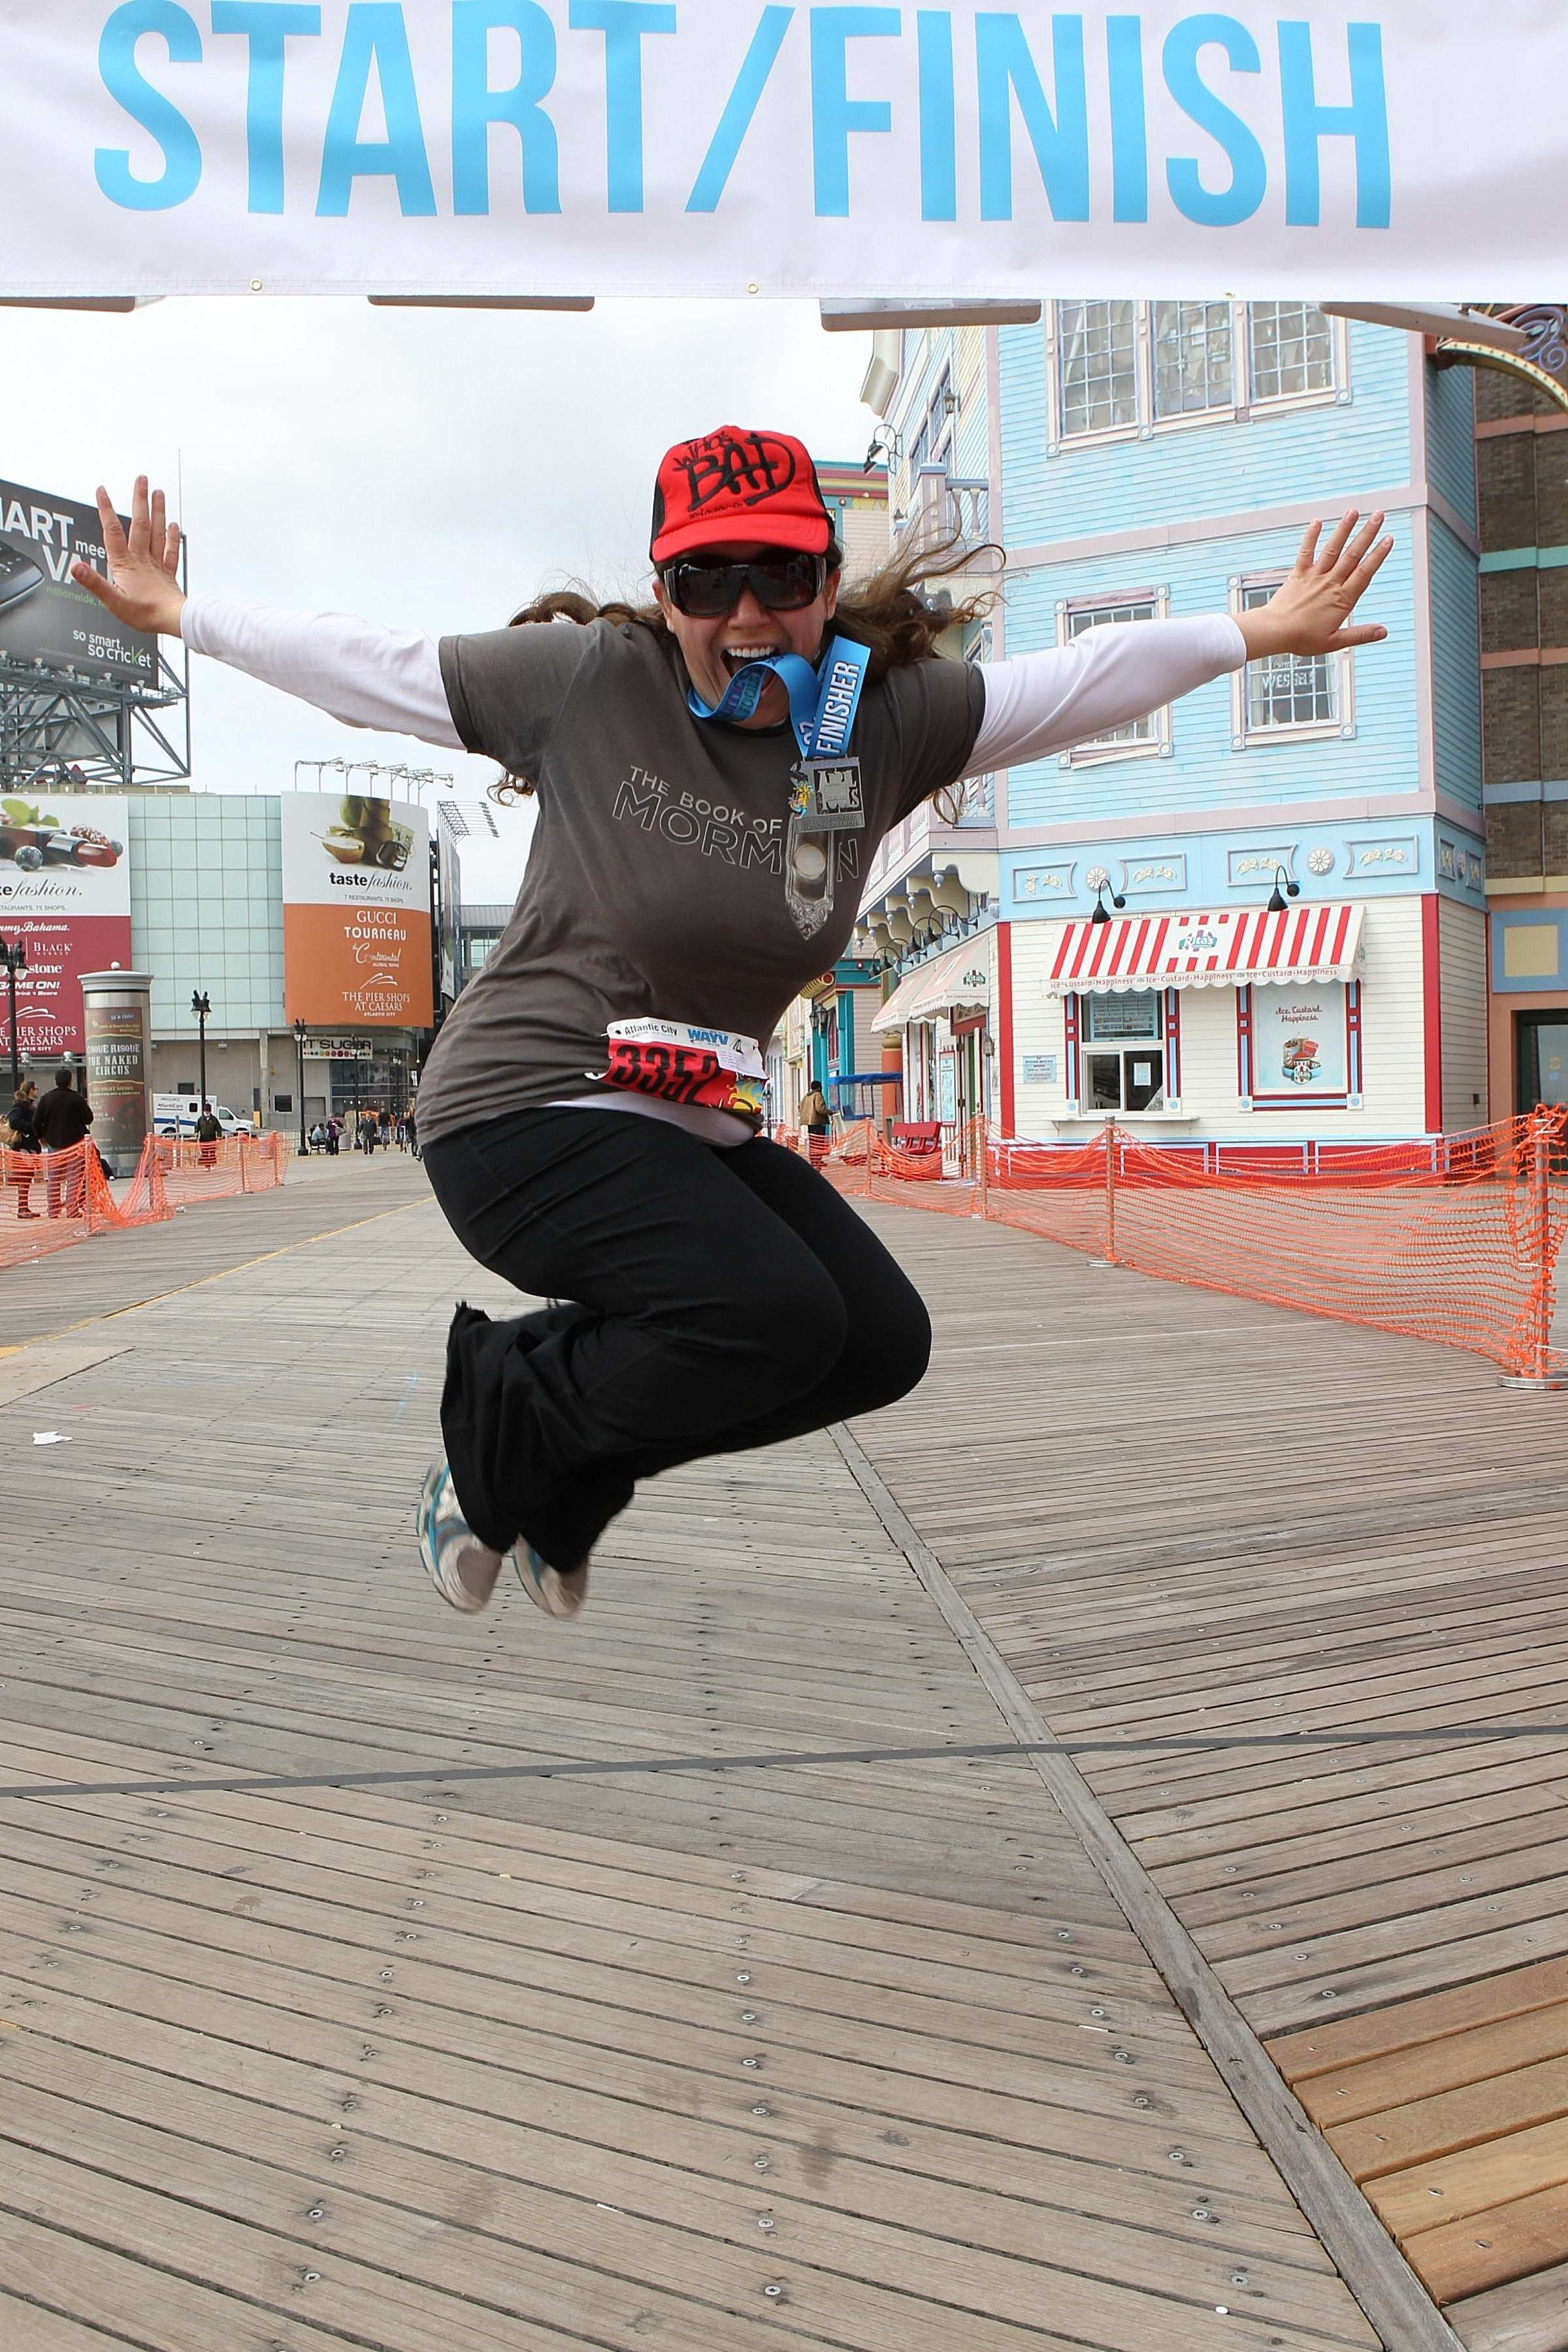 Aurora De Lucia jumping in the air after the finish of the Atlantic City race